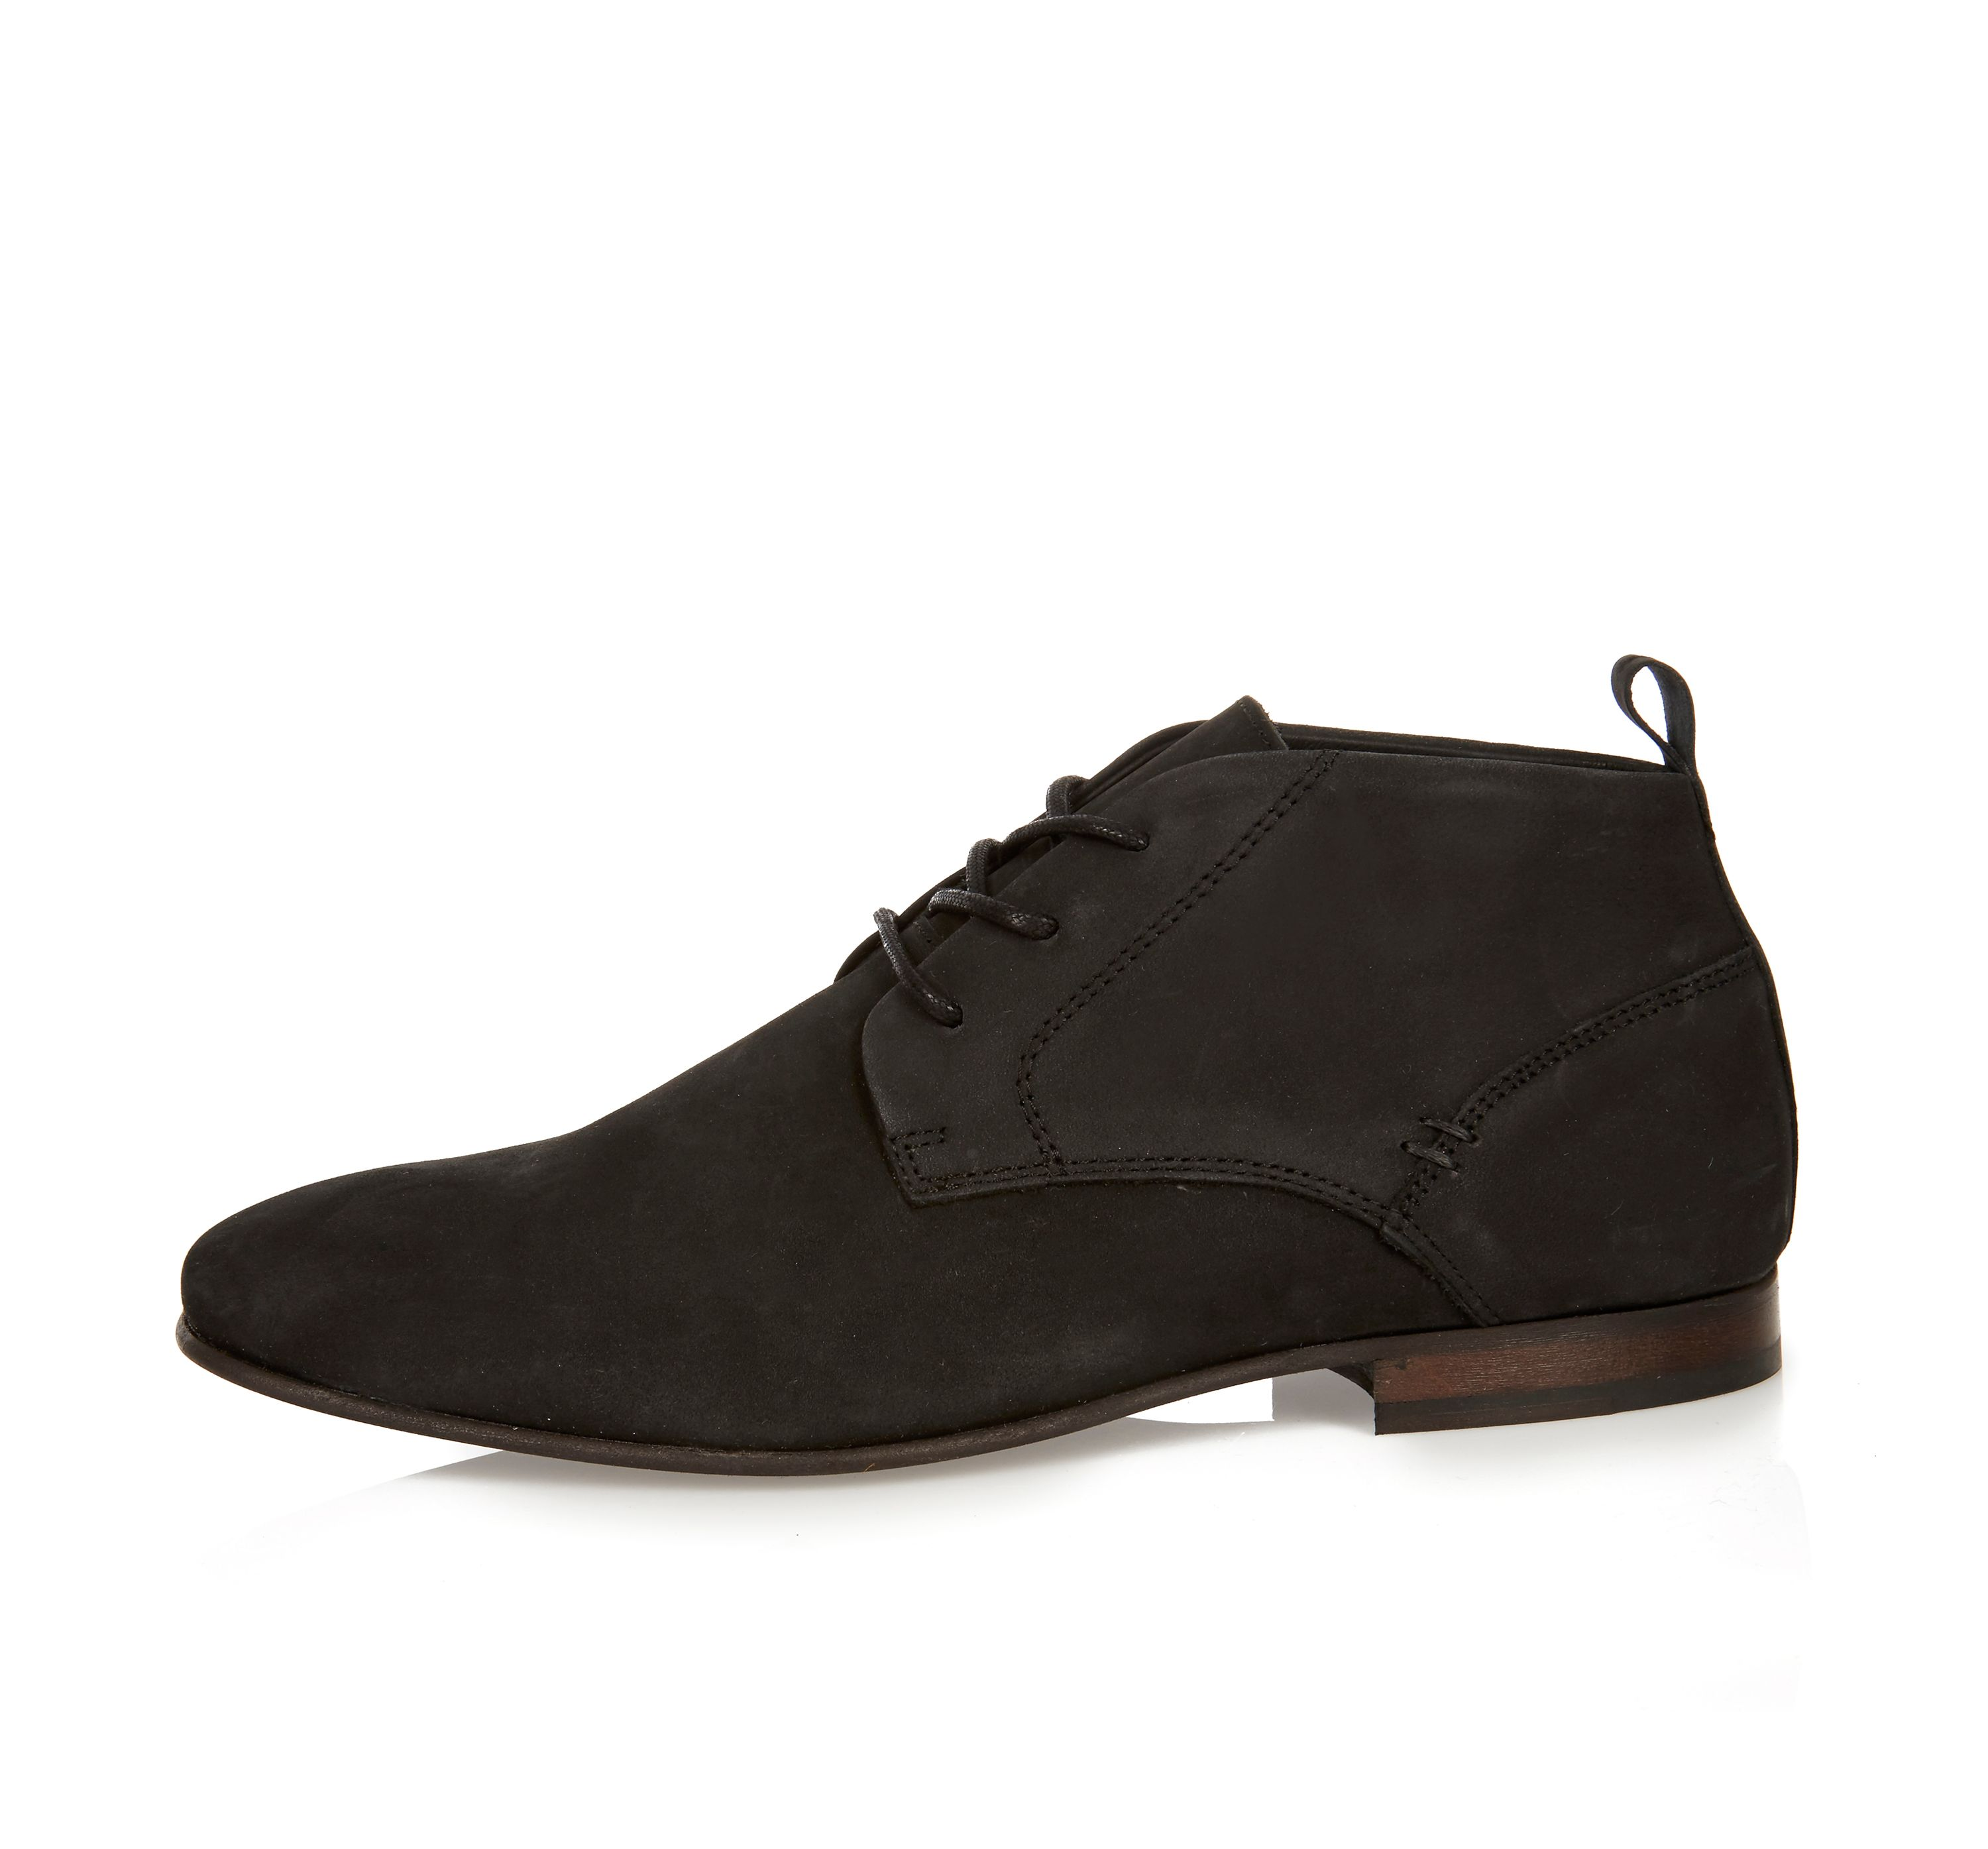 River Island Mens Black suede chukka boots